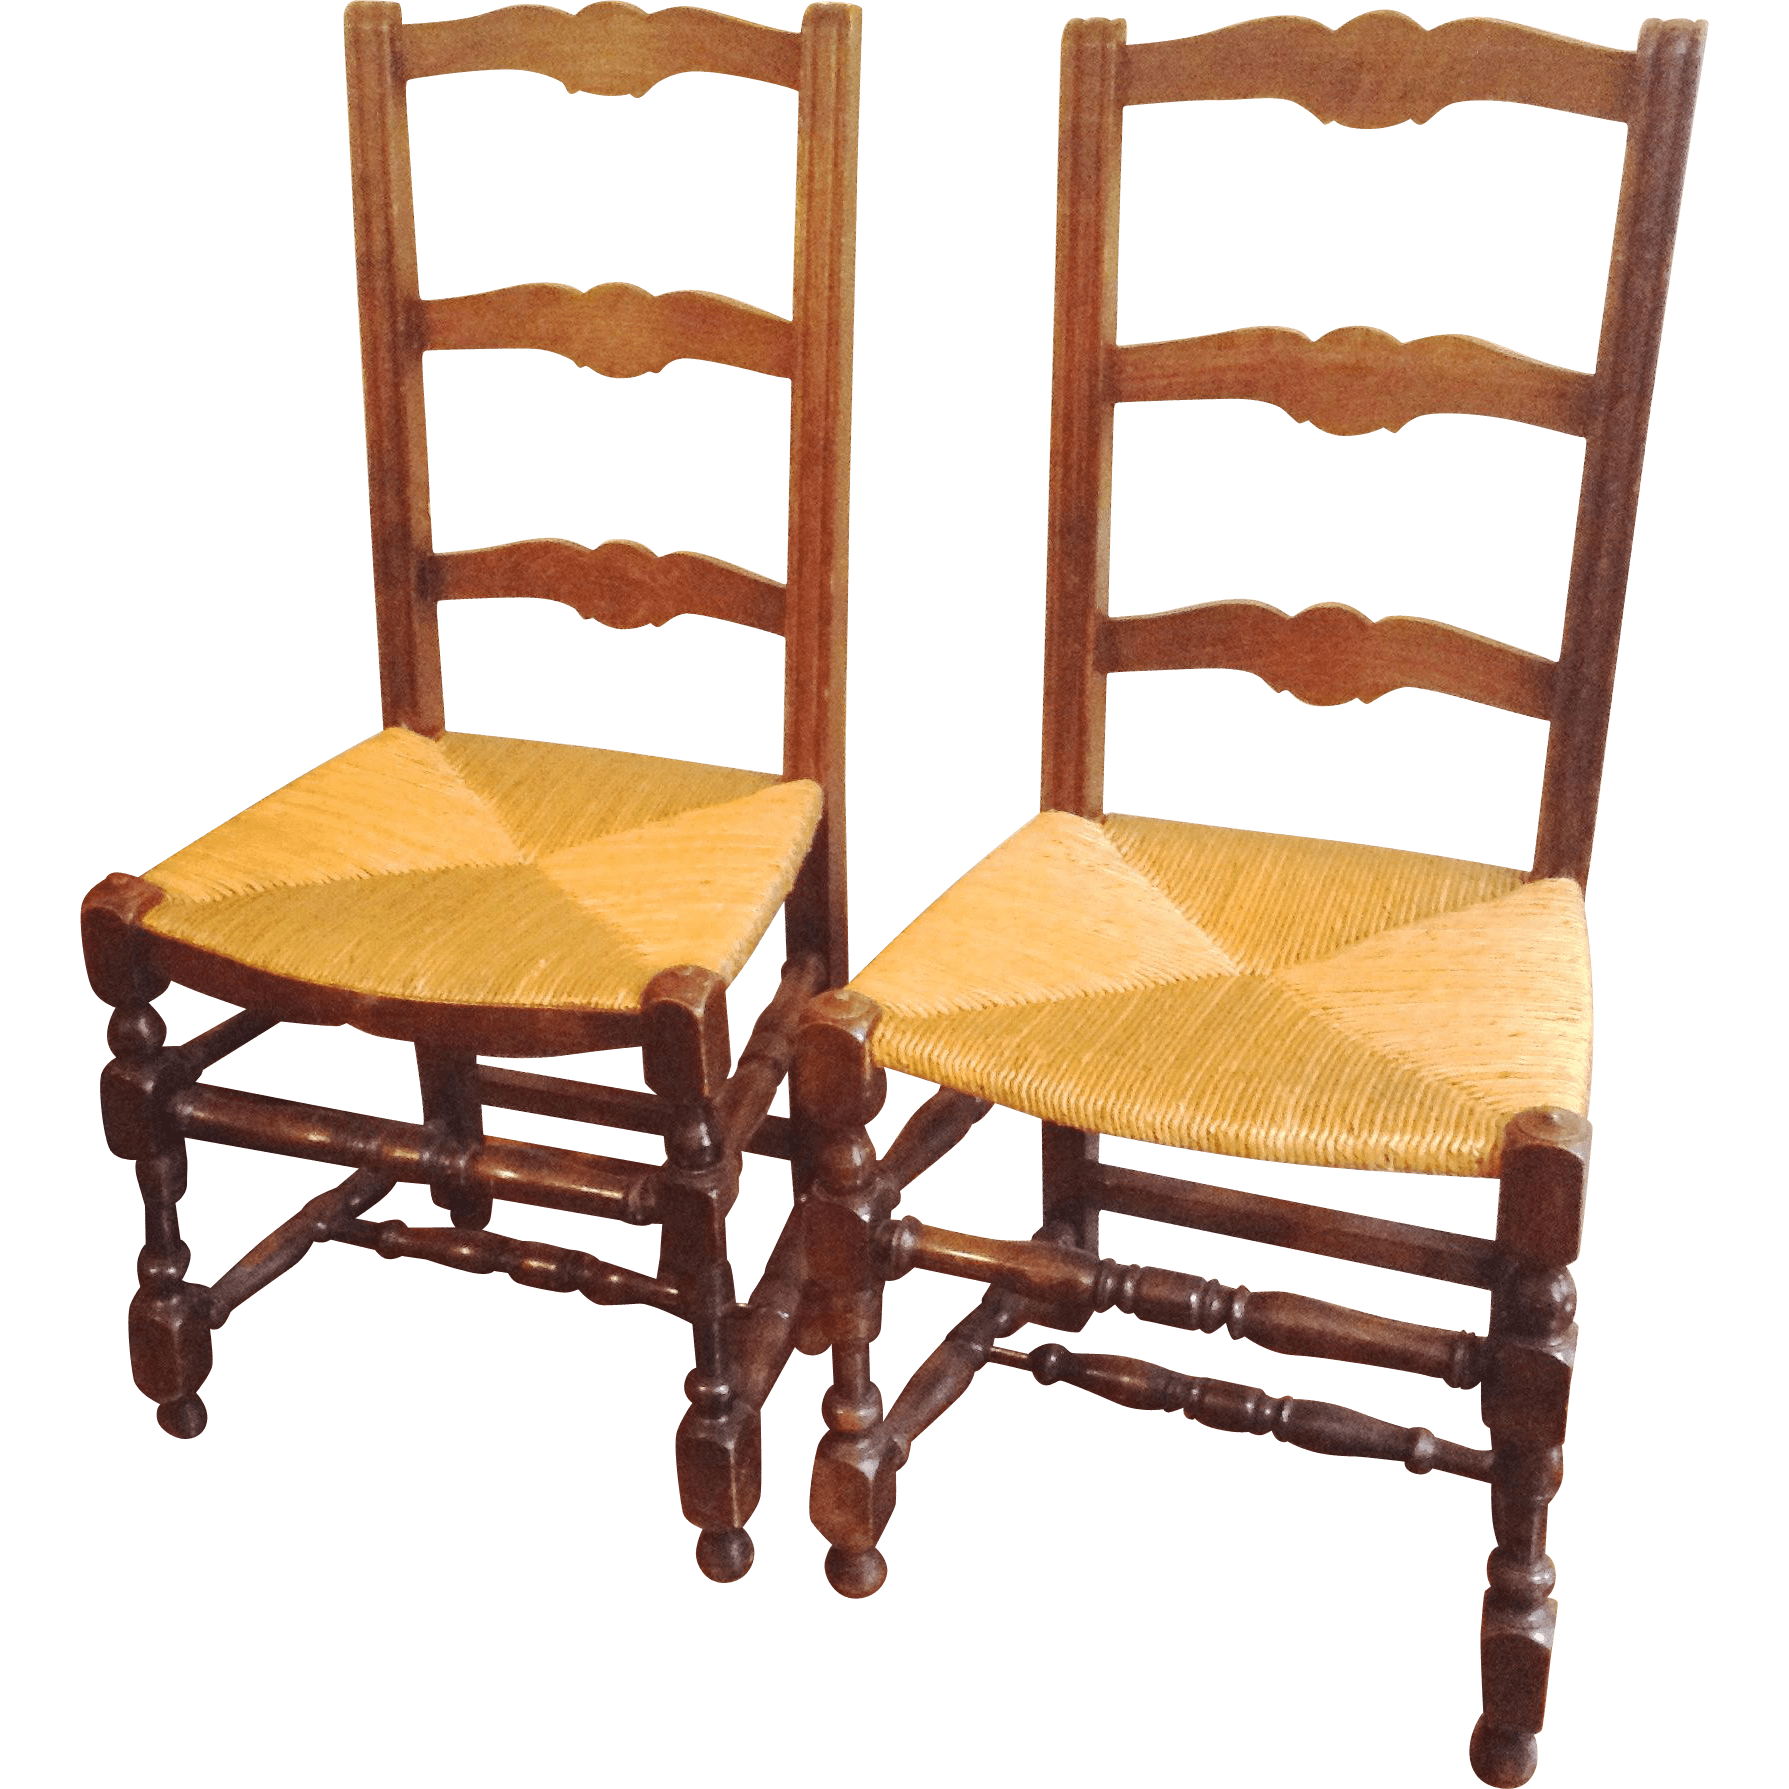 antique ladder back chairs with rush seats zero gravity pair french ladderback